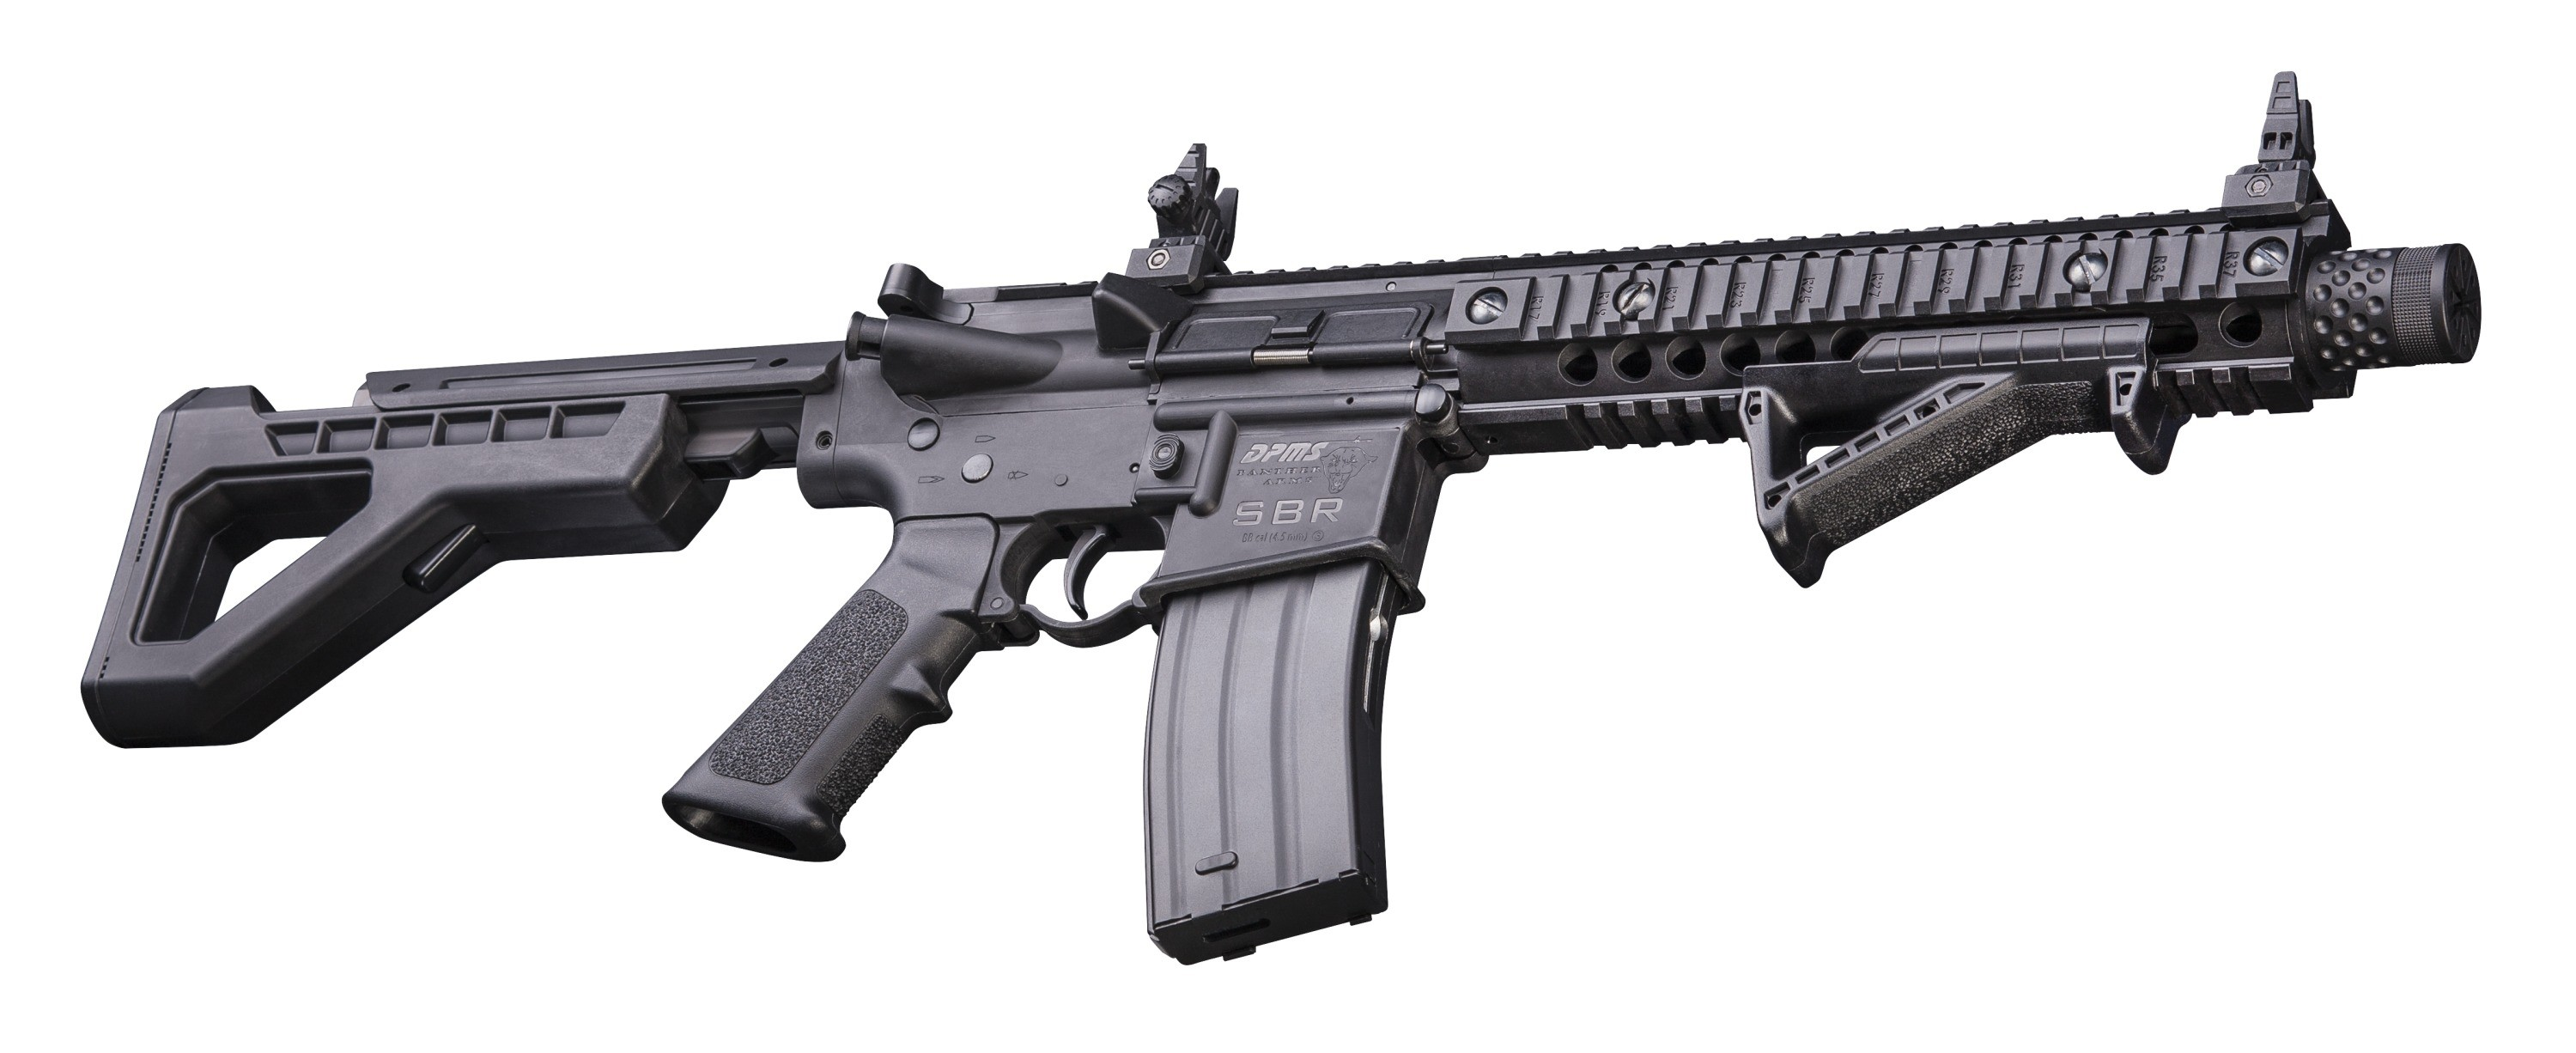 Crossman DPMS SBR Full Auto BB Rifle | R&L Archery